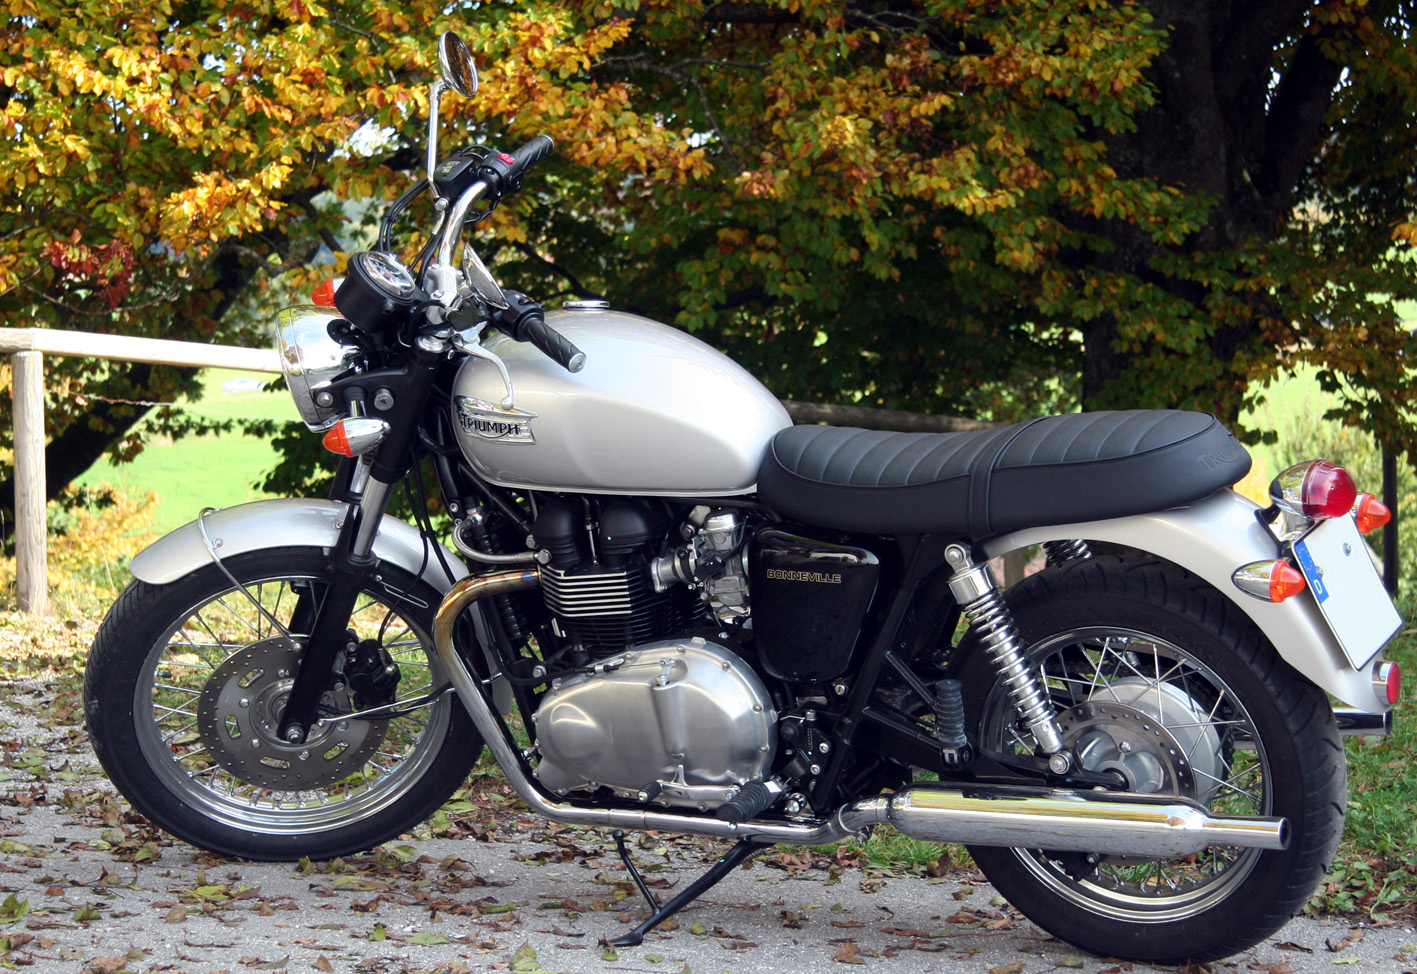 FileTriumph Bonneville 900cc 2008 Model